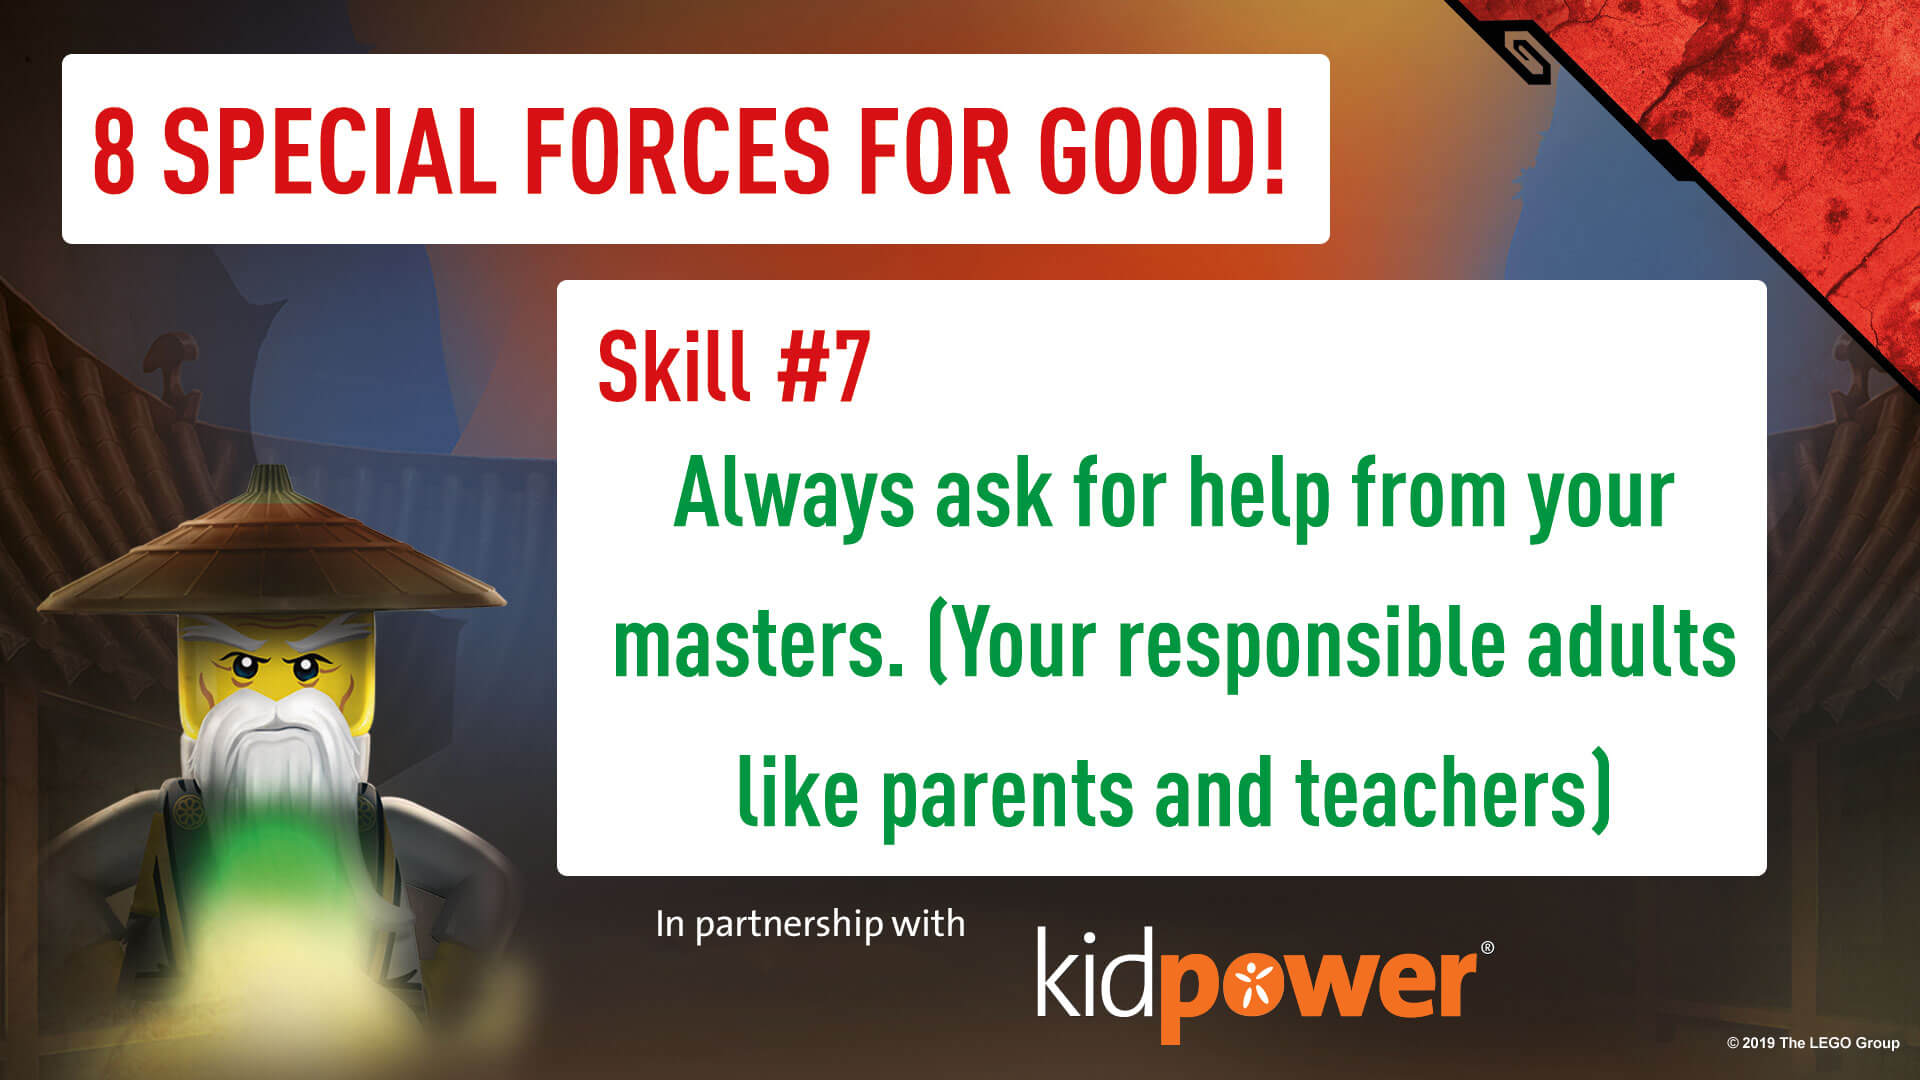 Special Forces For Good - Skill #7 - NINJAGO & KIDPOWER